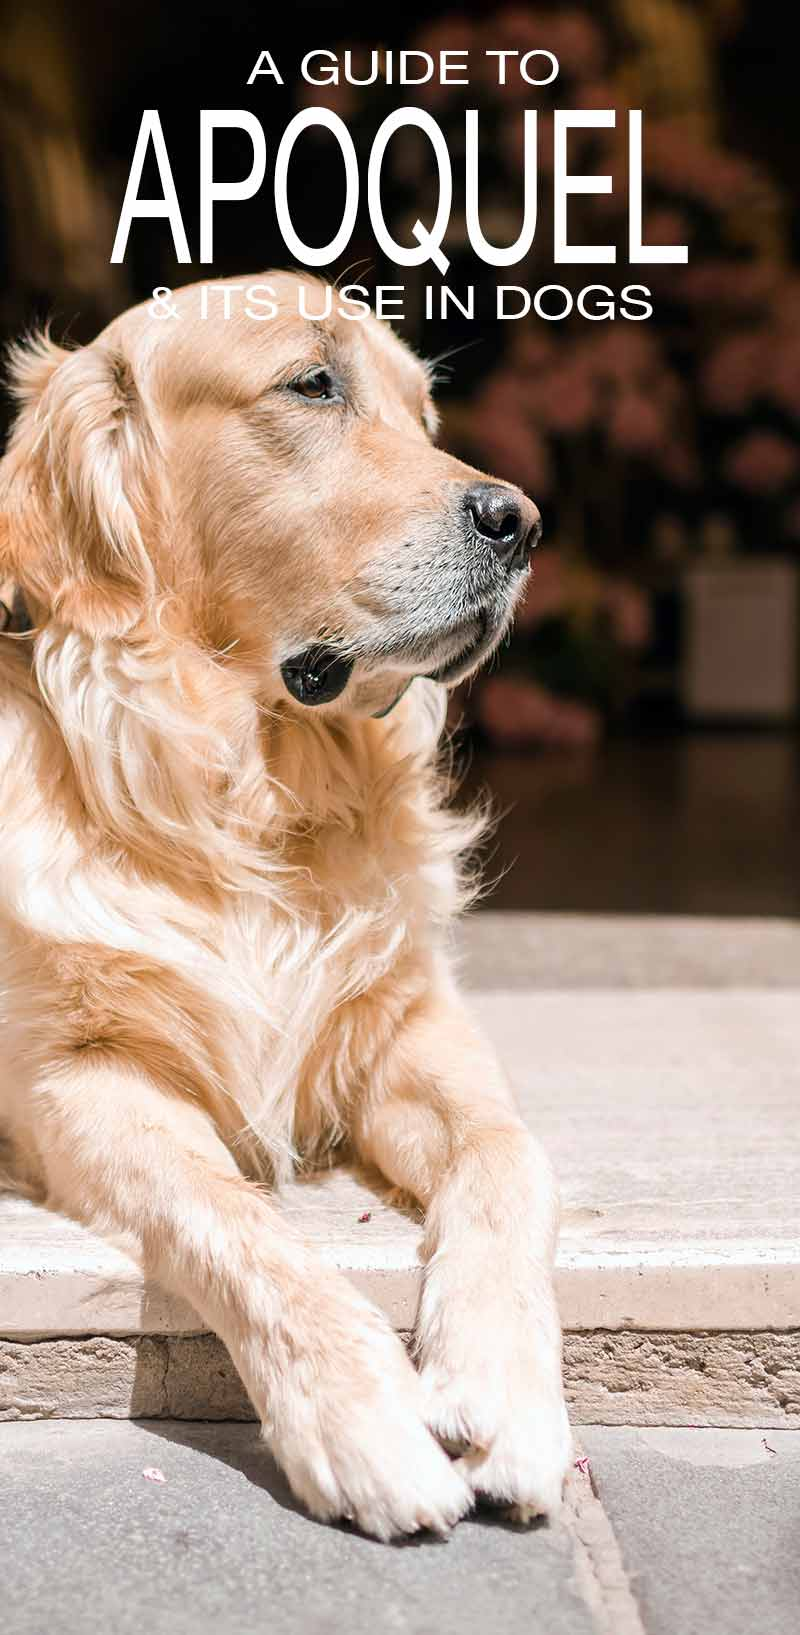 Apoquel for dogs - information and uses